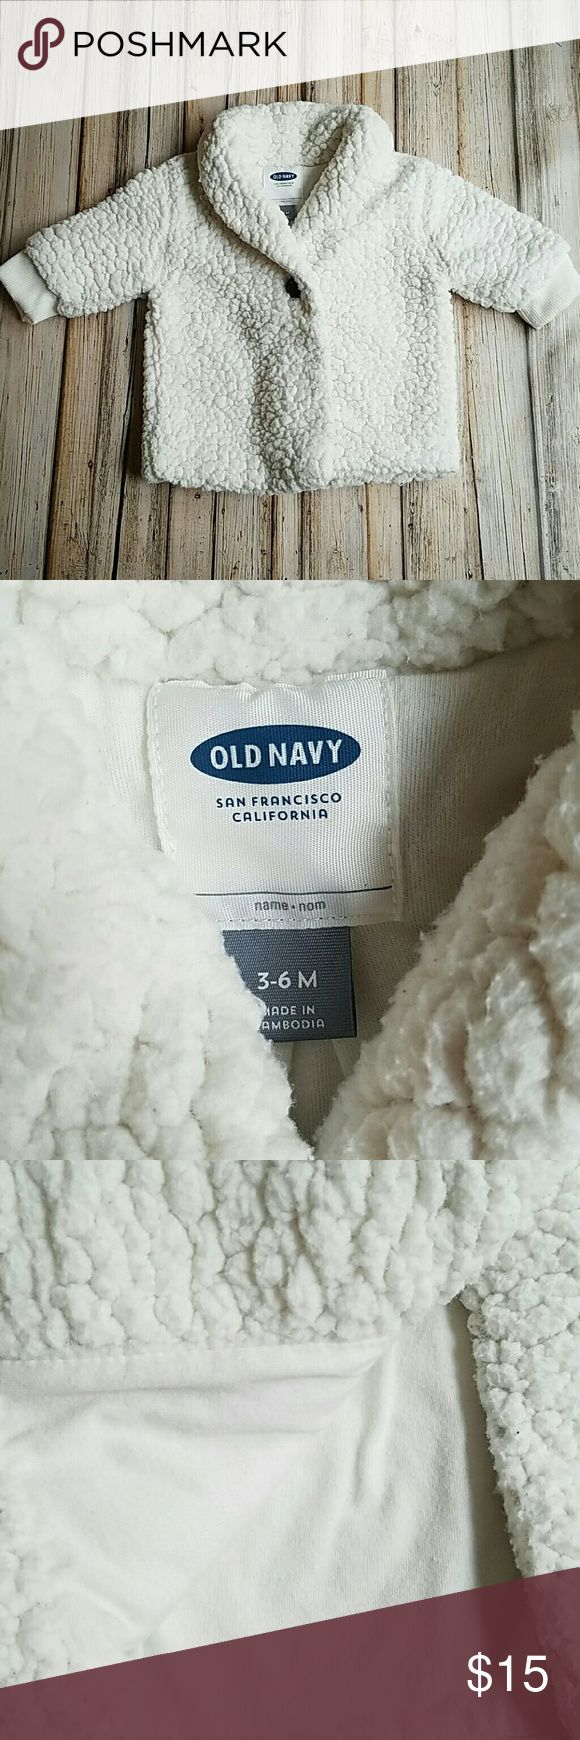 Old Navy Baby Jacket Gently used Old Navy baby jacket is soft and warm.   Size:     3-6 months Color : off - white   No rips/stains/holes Old Navy Jackets & Coats